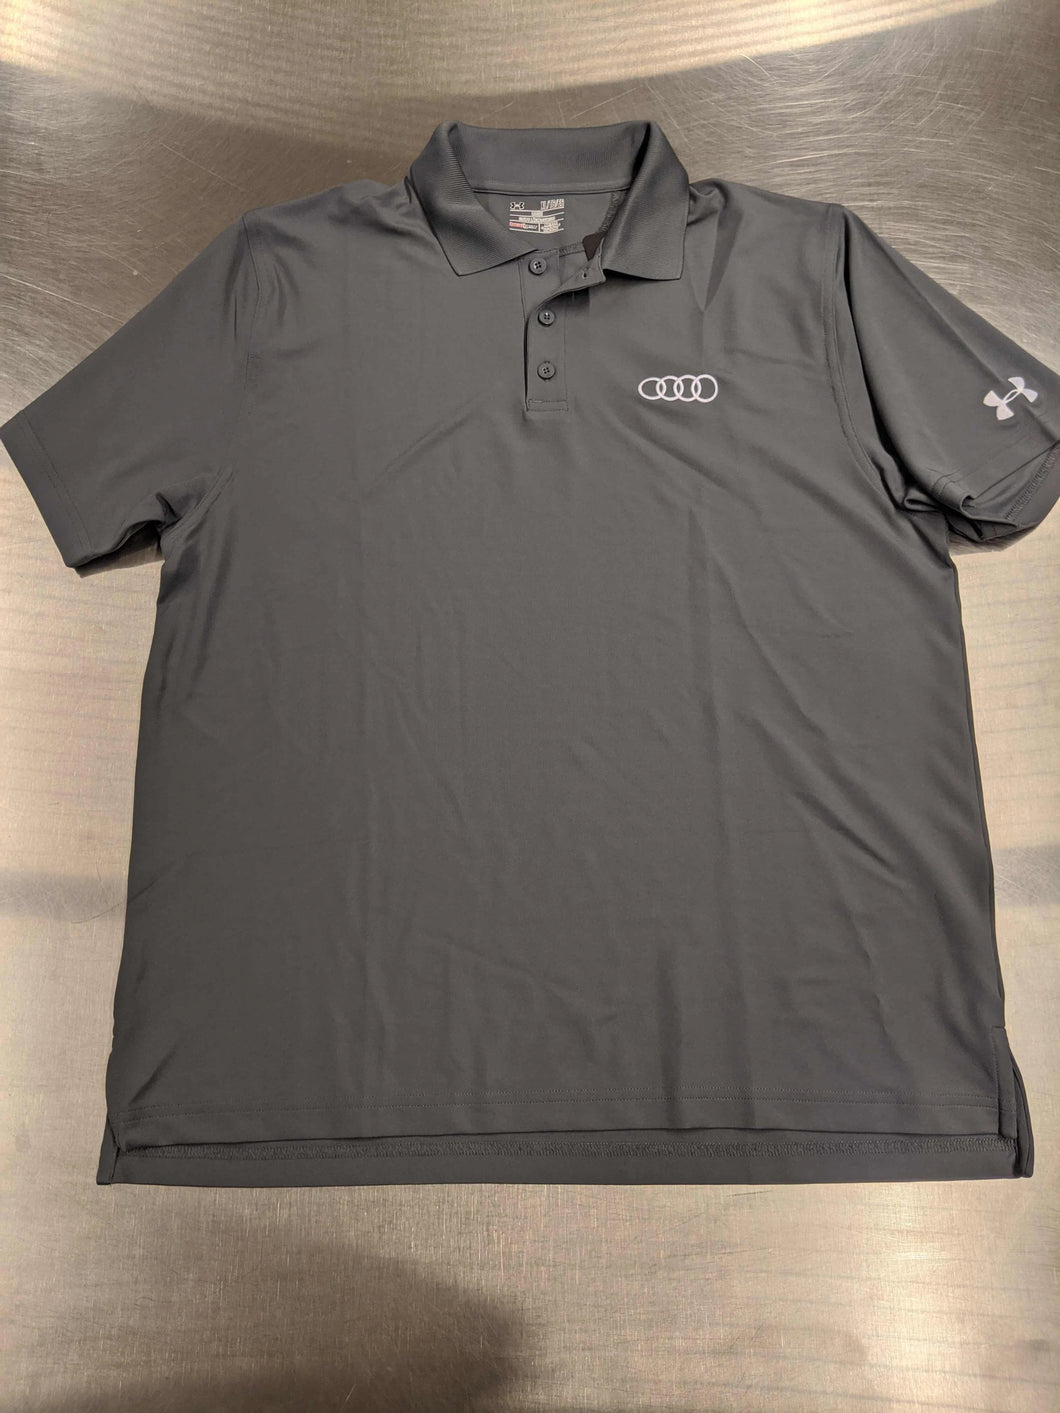 Mens Grey Under Armor Polo